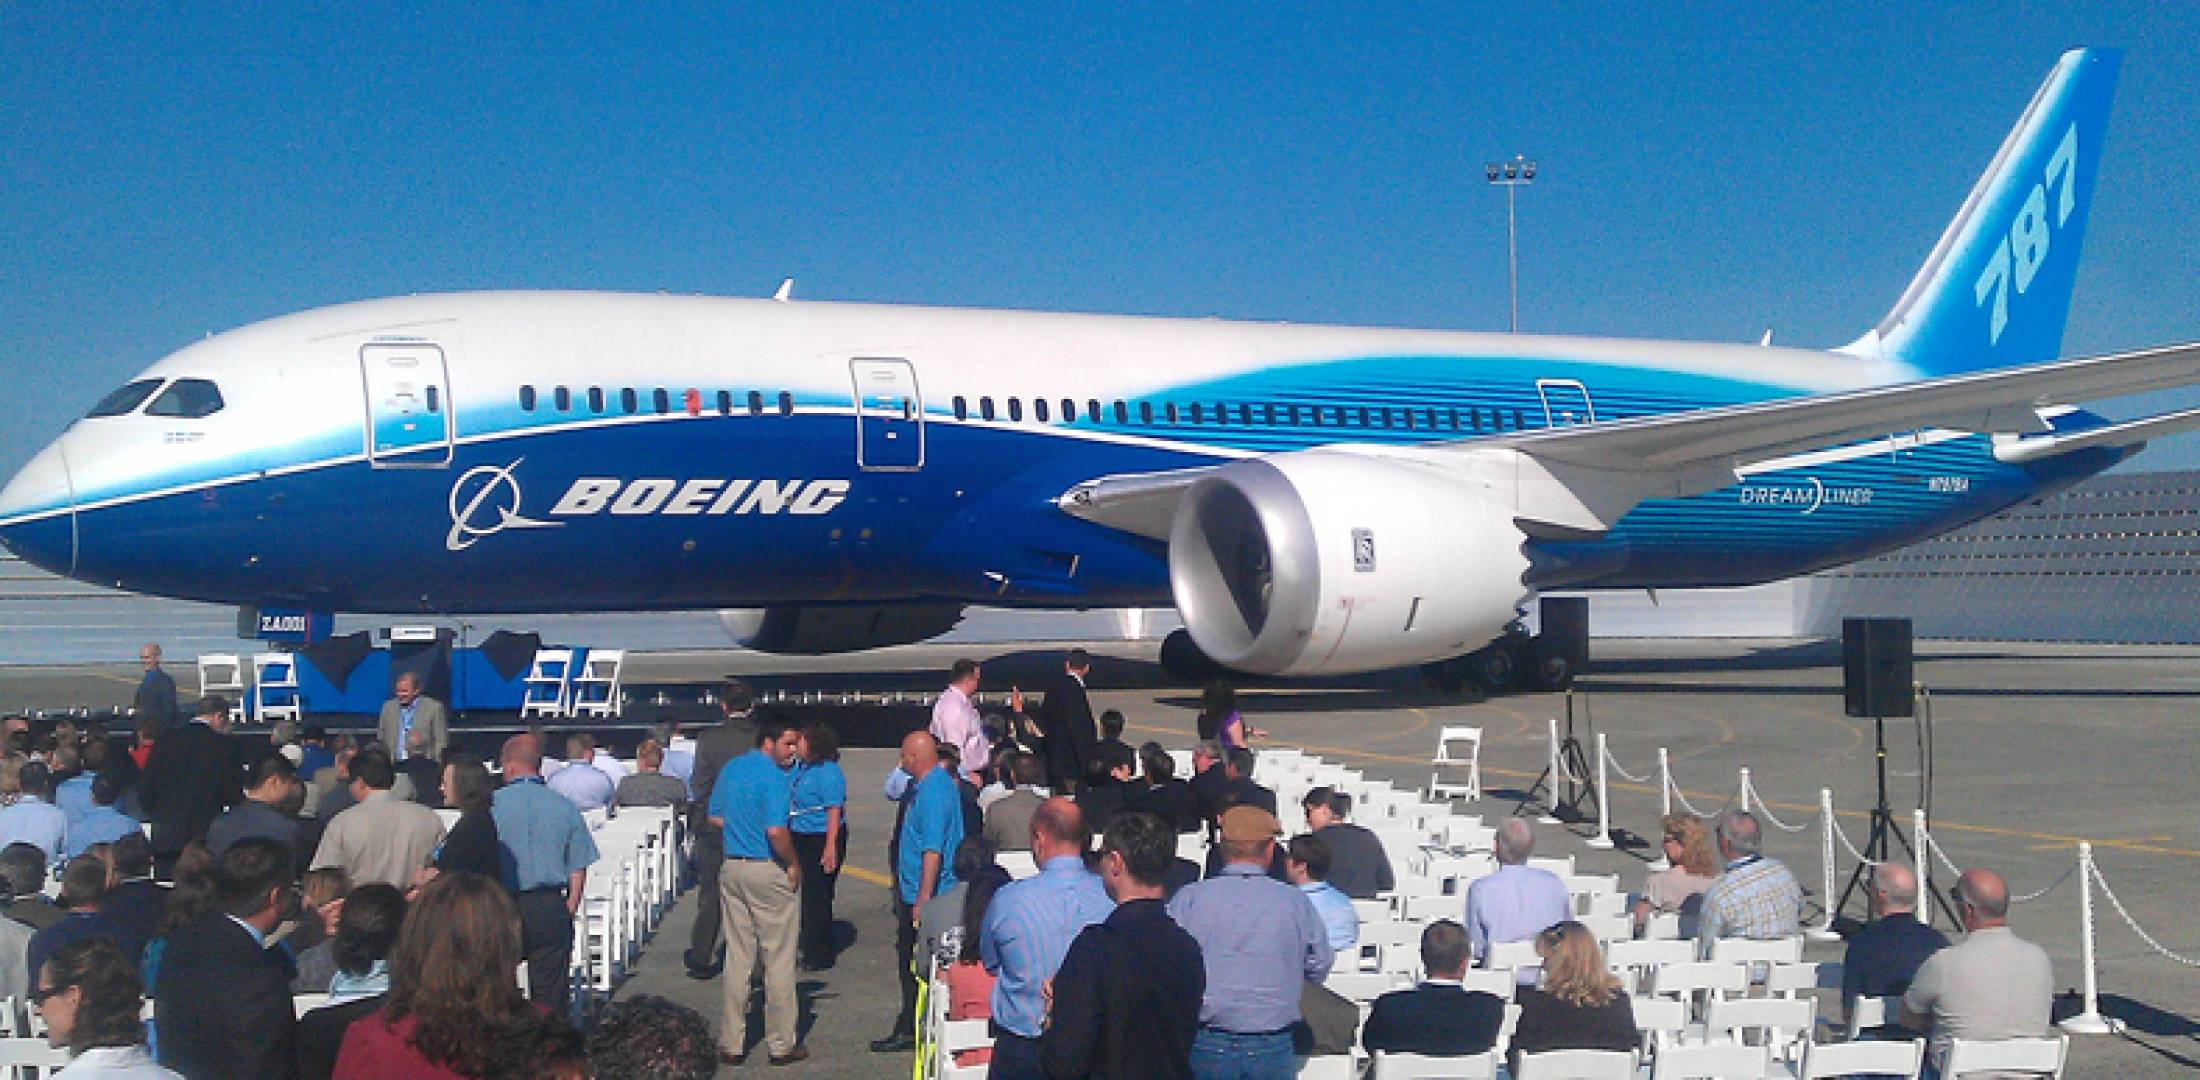 At a ceremony at Paine Field in Everett, Wash., today, Boeing announced that